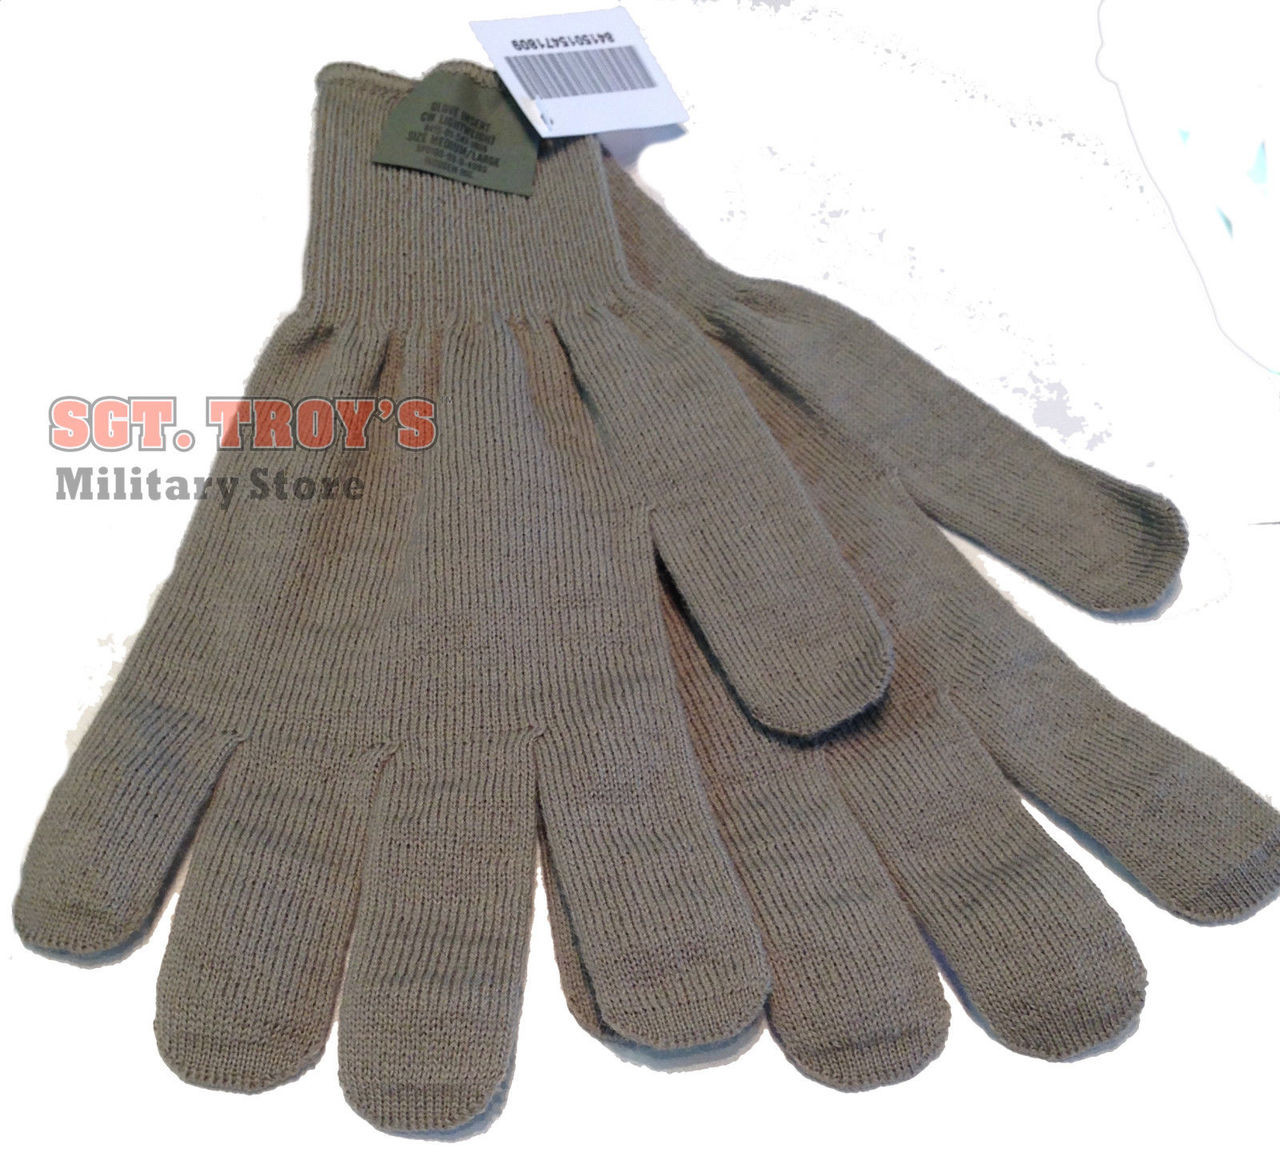 Made in US Army Foliage Green CW Lightweight Military ACU Inserts Mittens Gloves